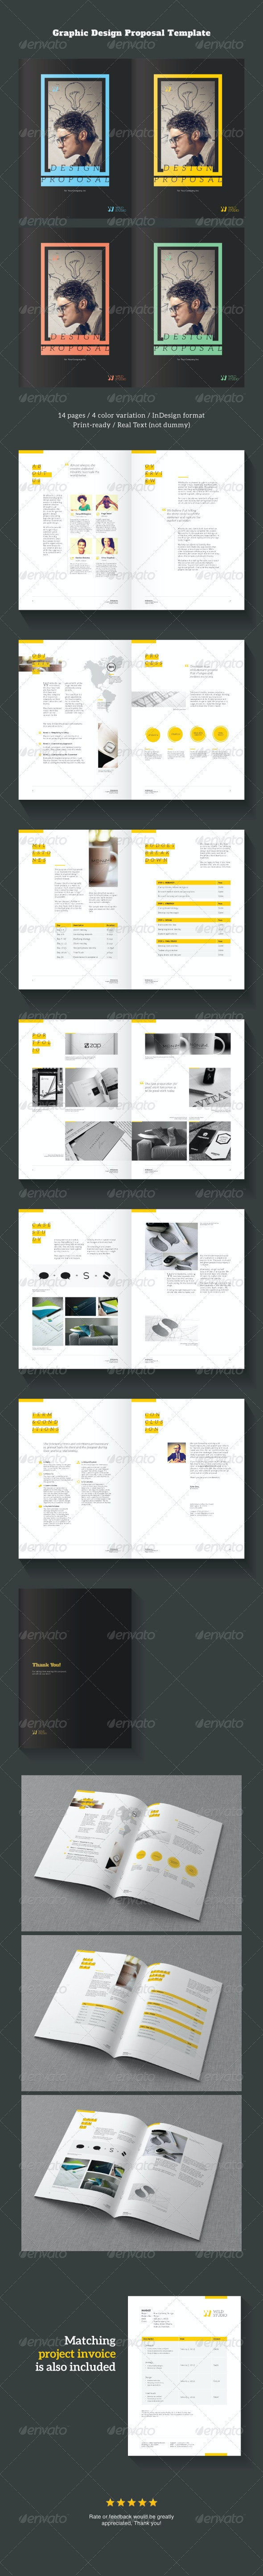 Graphic Design Project Proposal Template - Proposals & Invoices Stationery